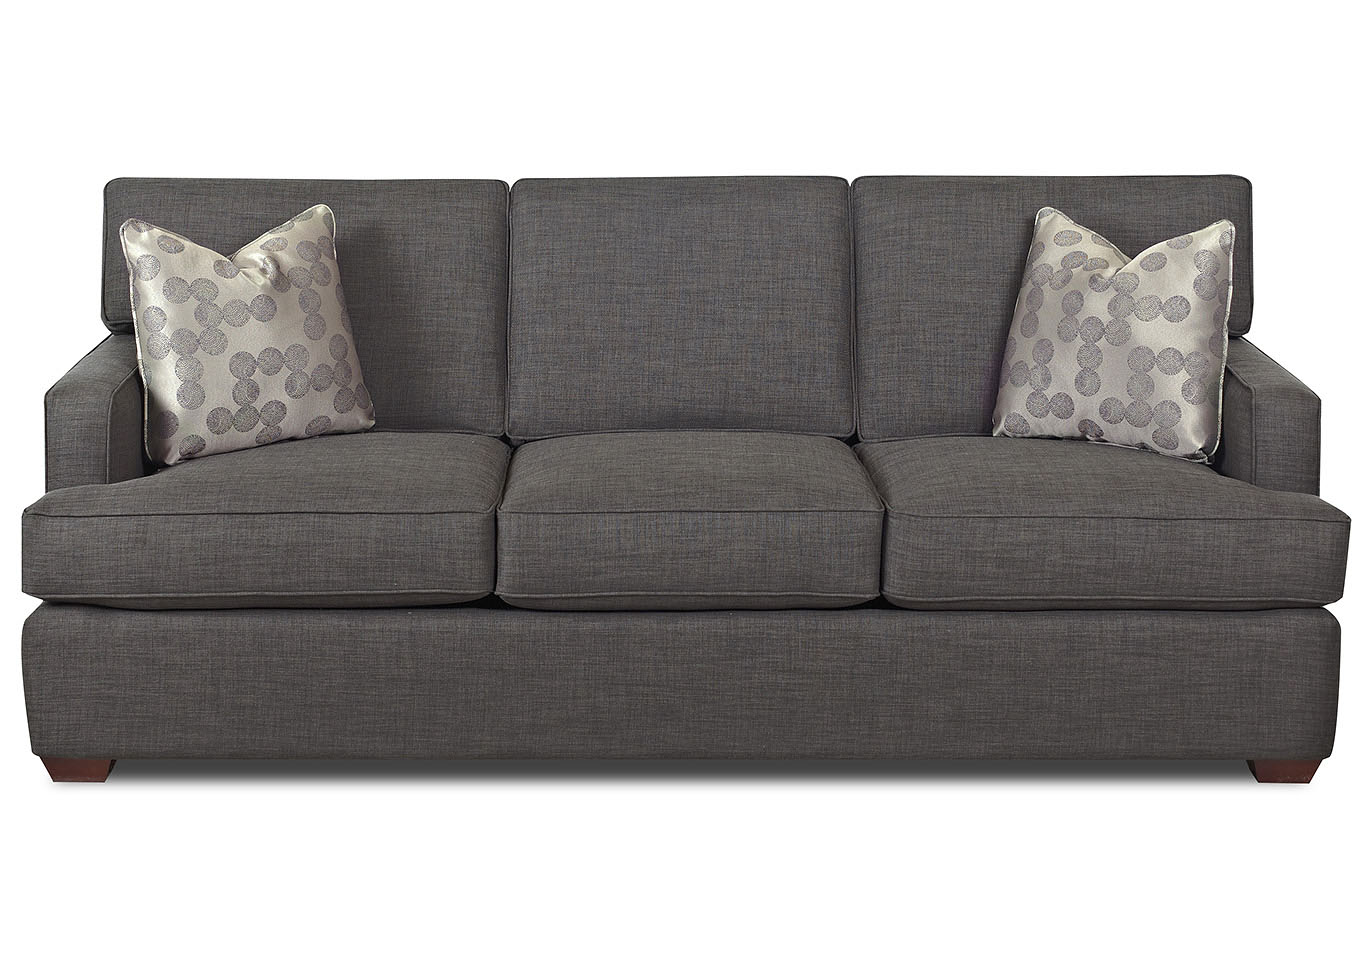 Loomis Charcoal Gray Stationary Fabric Sofa,Klaussner Home Furnishings